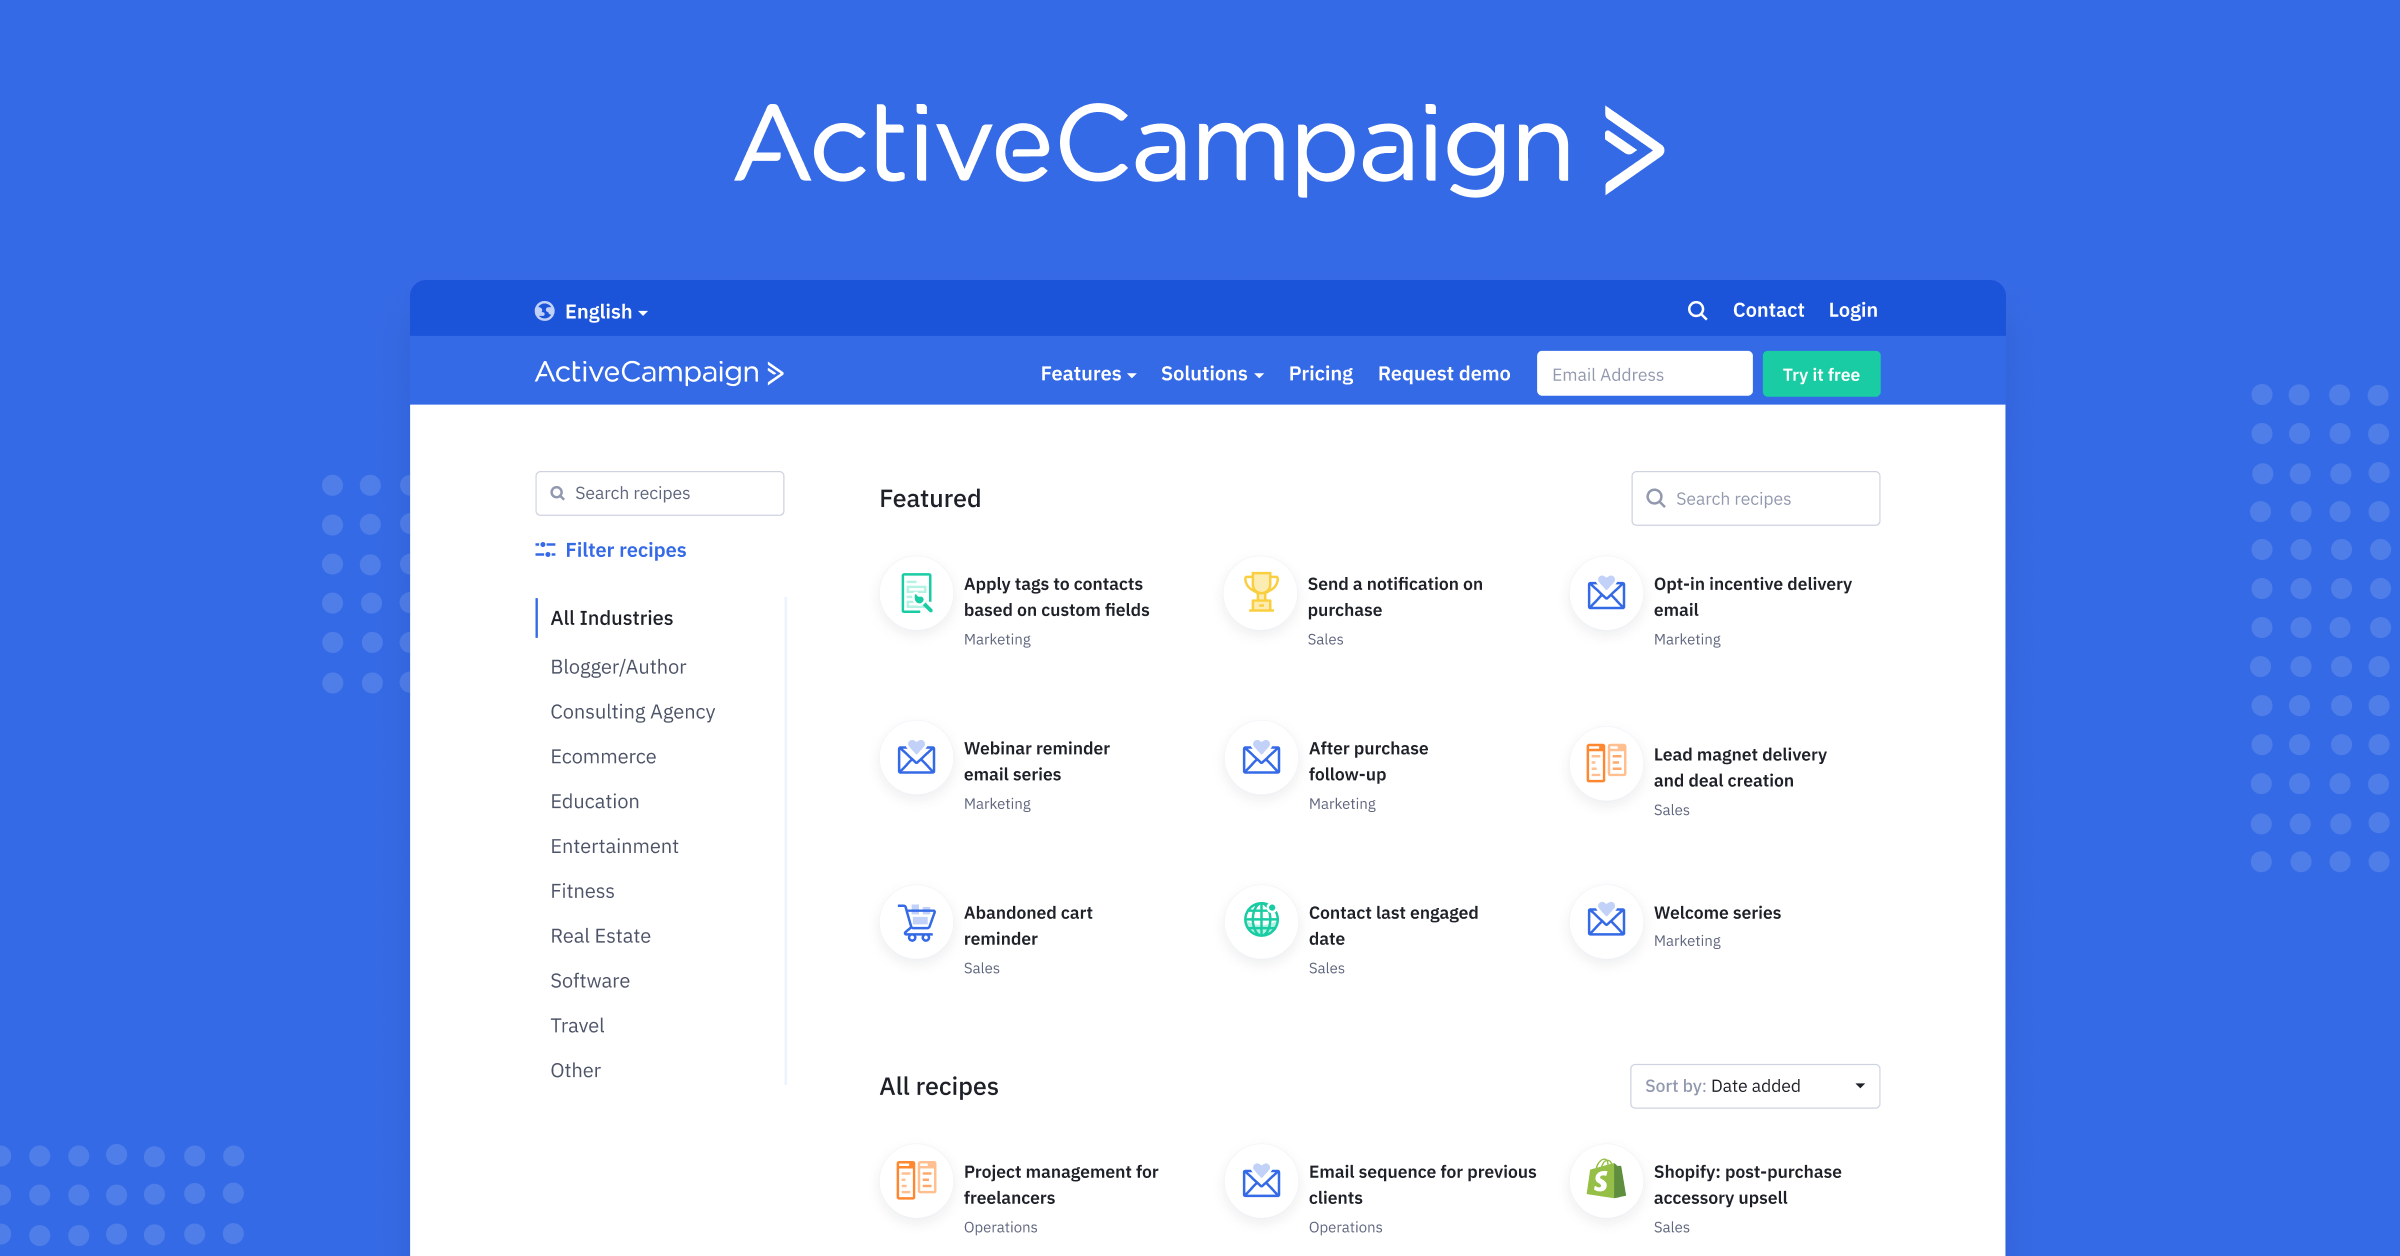 Introducing the ActiveCampaign Marketplace: Find a Recipe, Automate Anything